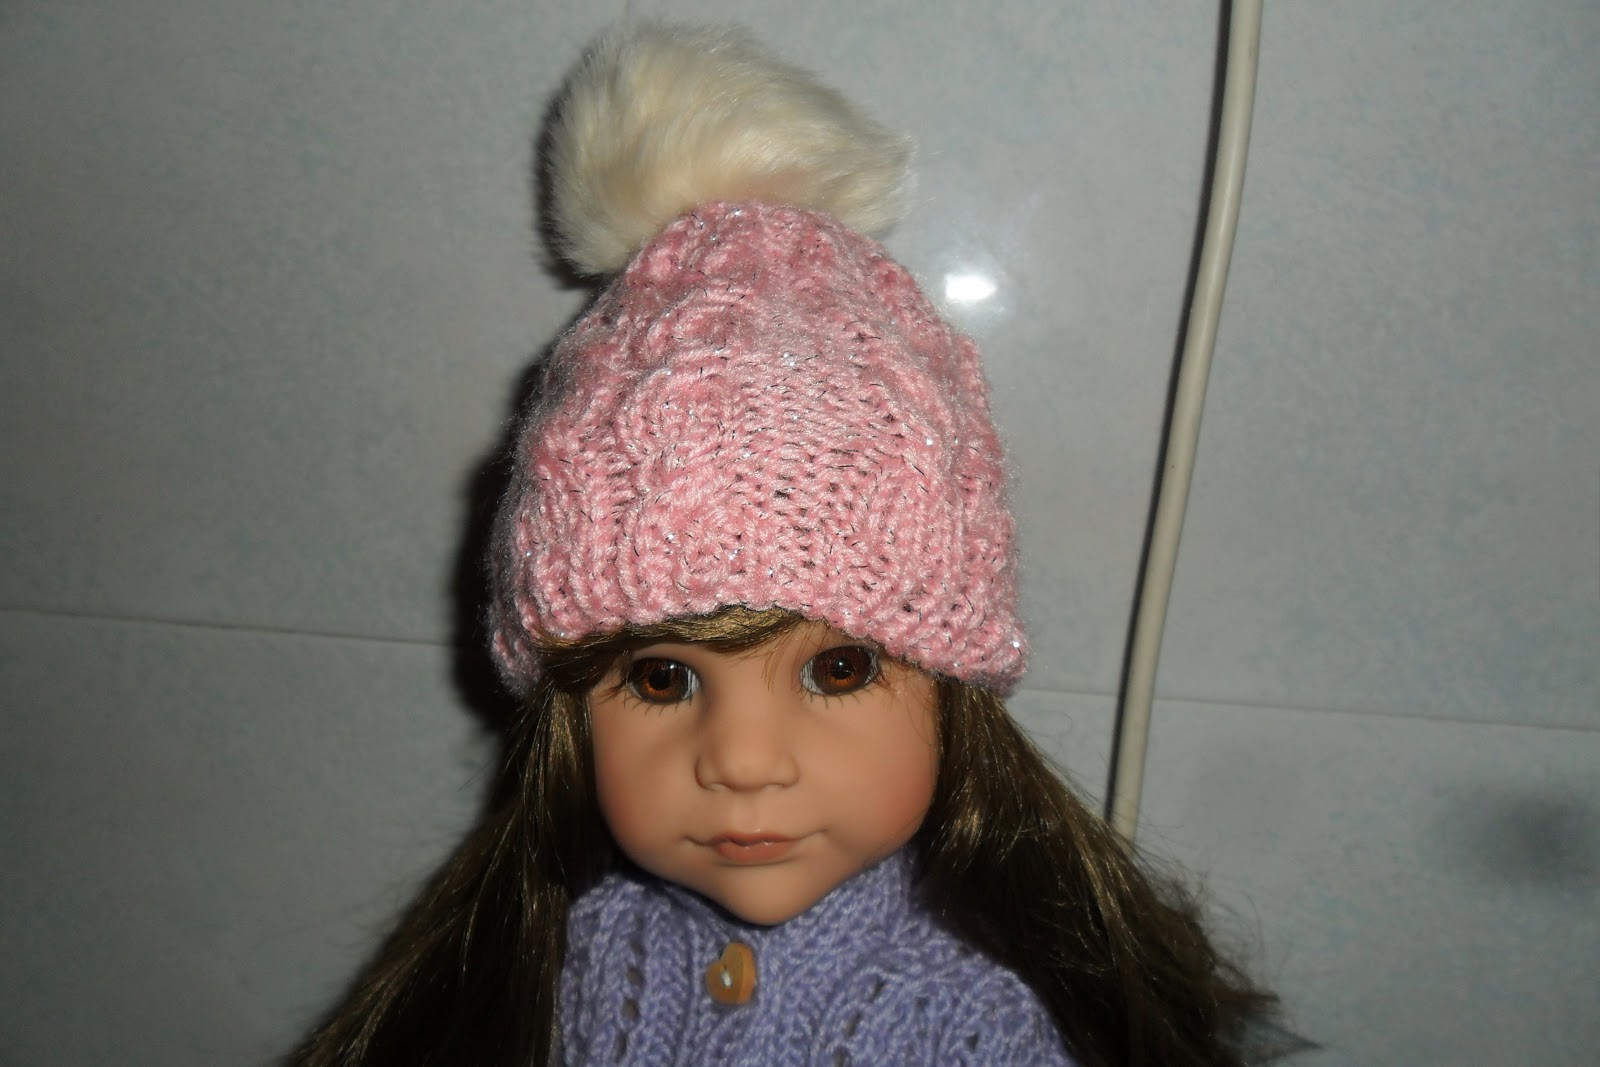 Olive Groves and Doll Knits: Lamè doll hat knitting pattern